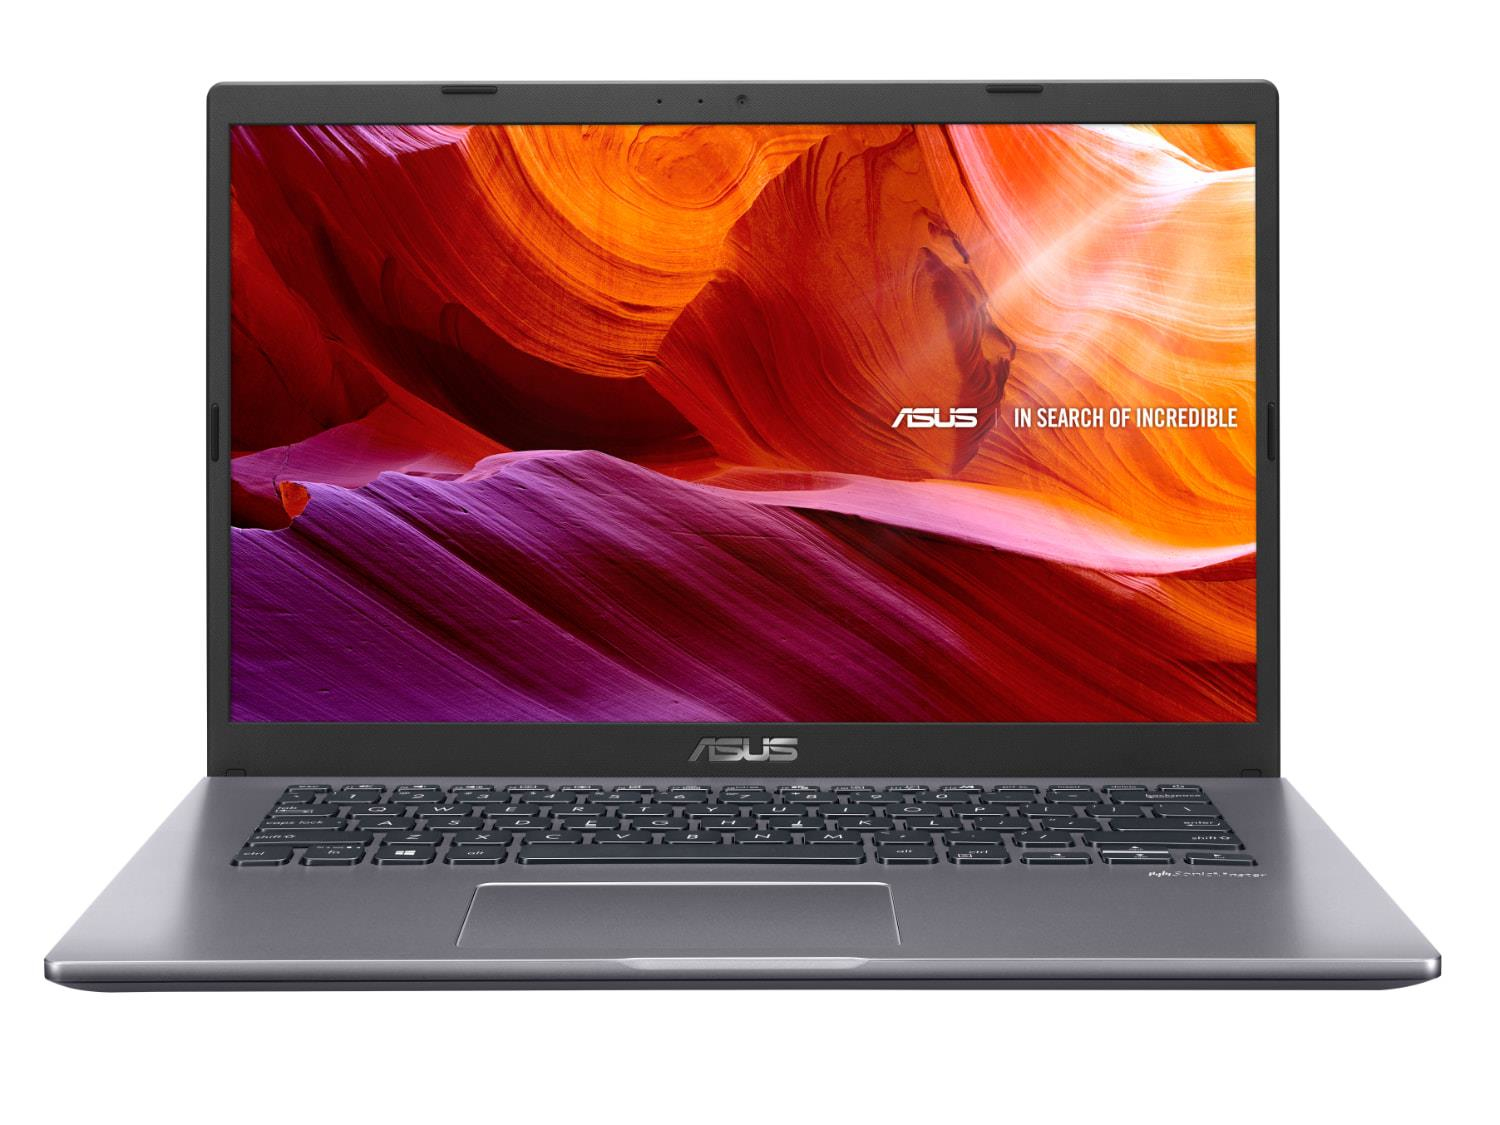 ASUS X409FA-EK149T notebook Grey 35.6 cm (14